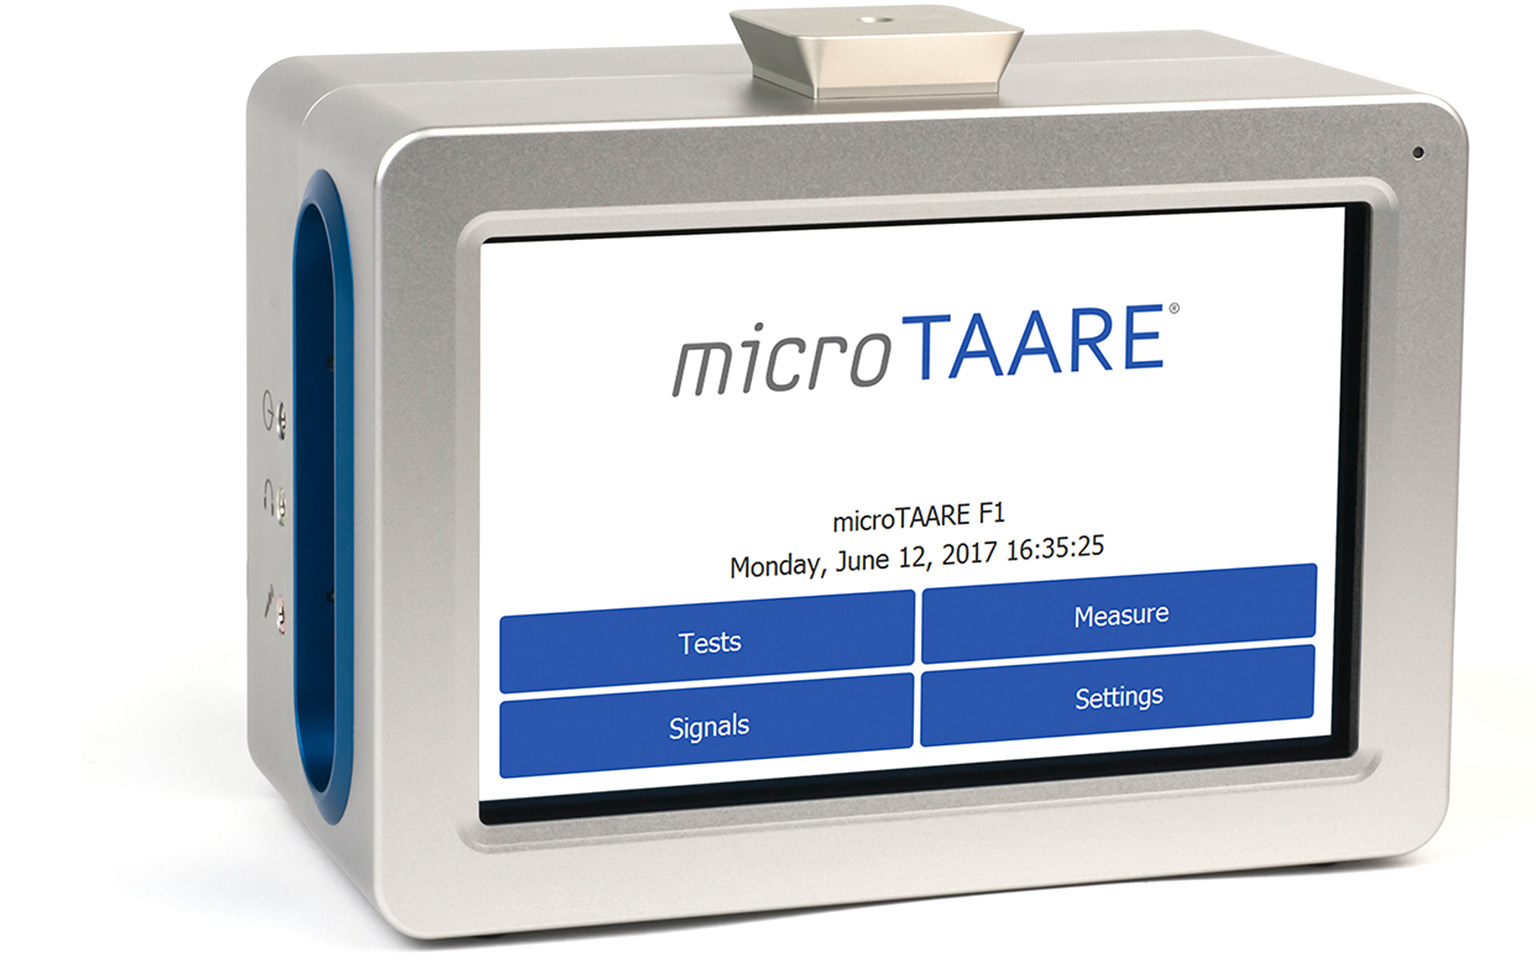 microTaare sideview